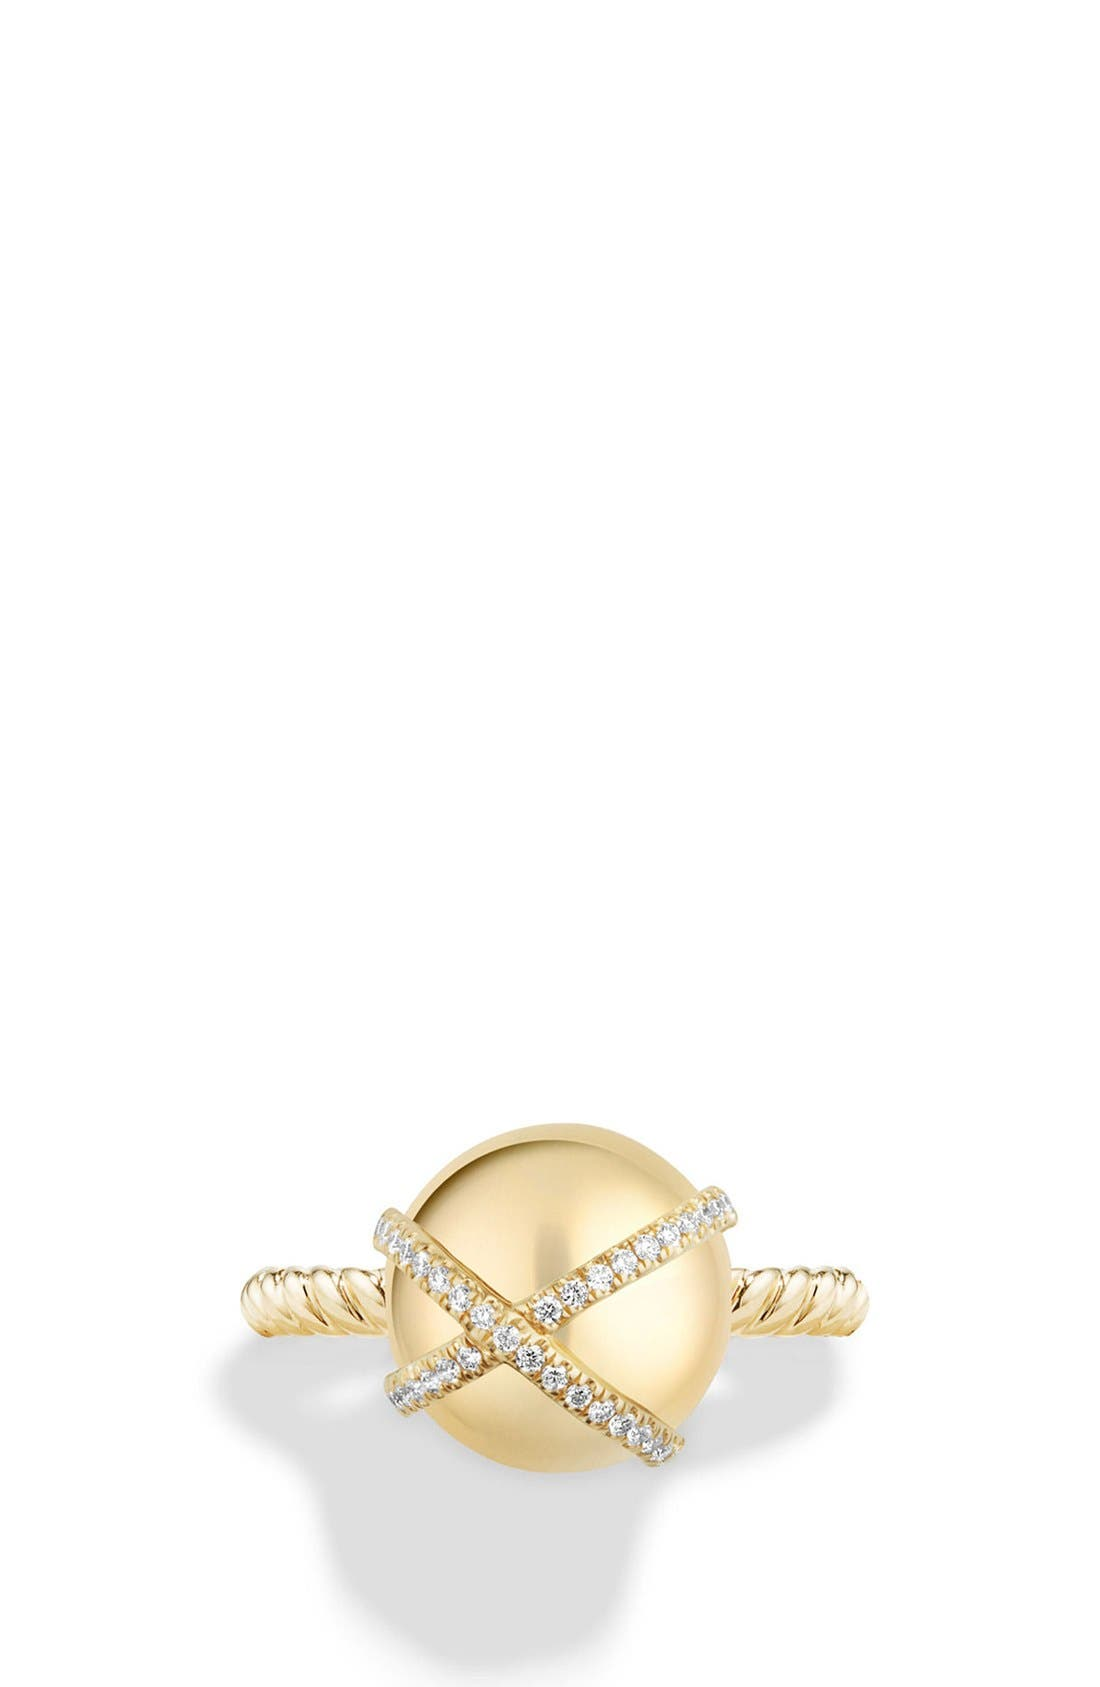 'Solari' Wrap Ring with Pavé Diamonds in 18k Gold,                             Alternate thumbnail 3, color,                             YELLOW GOLD